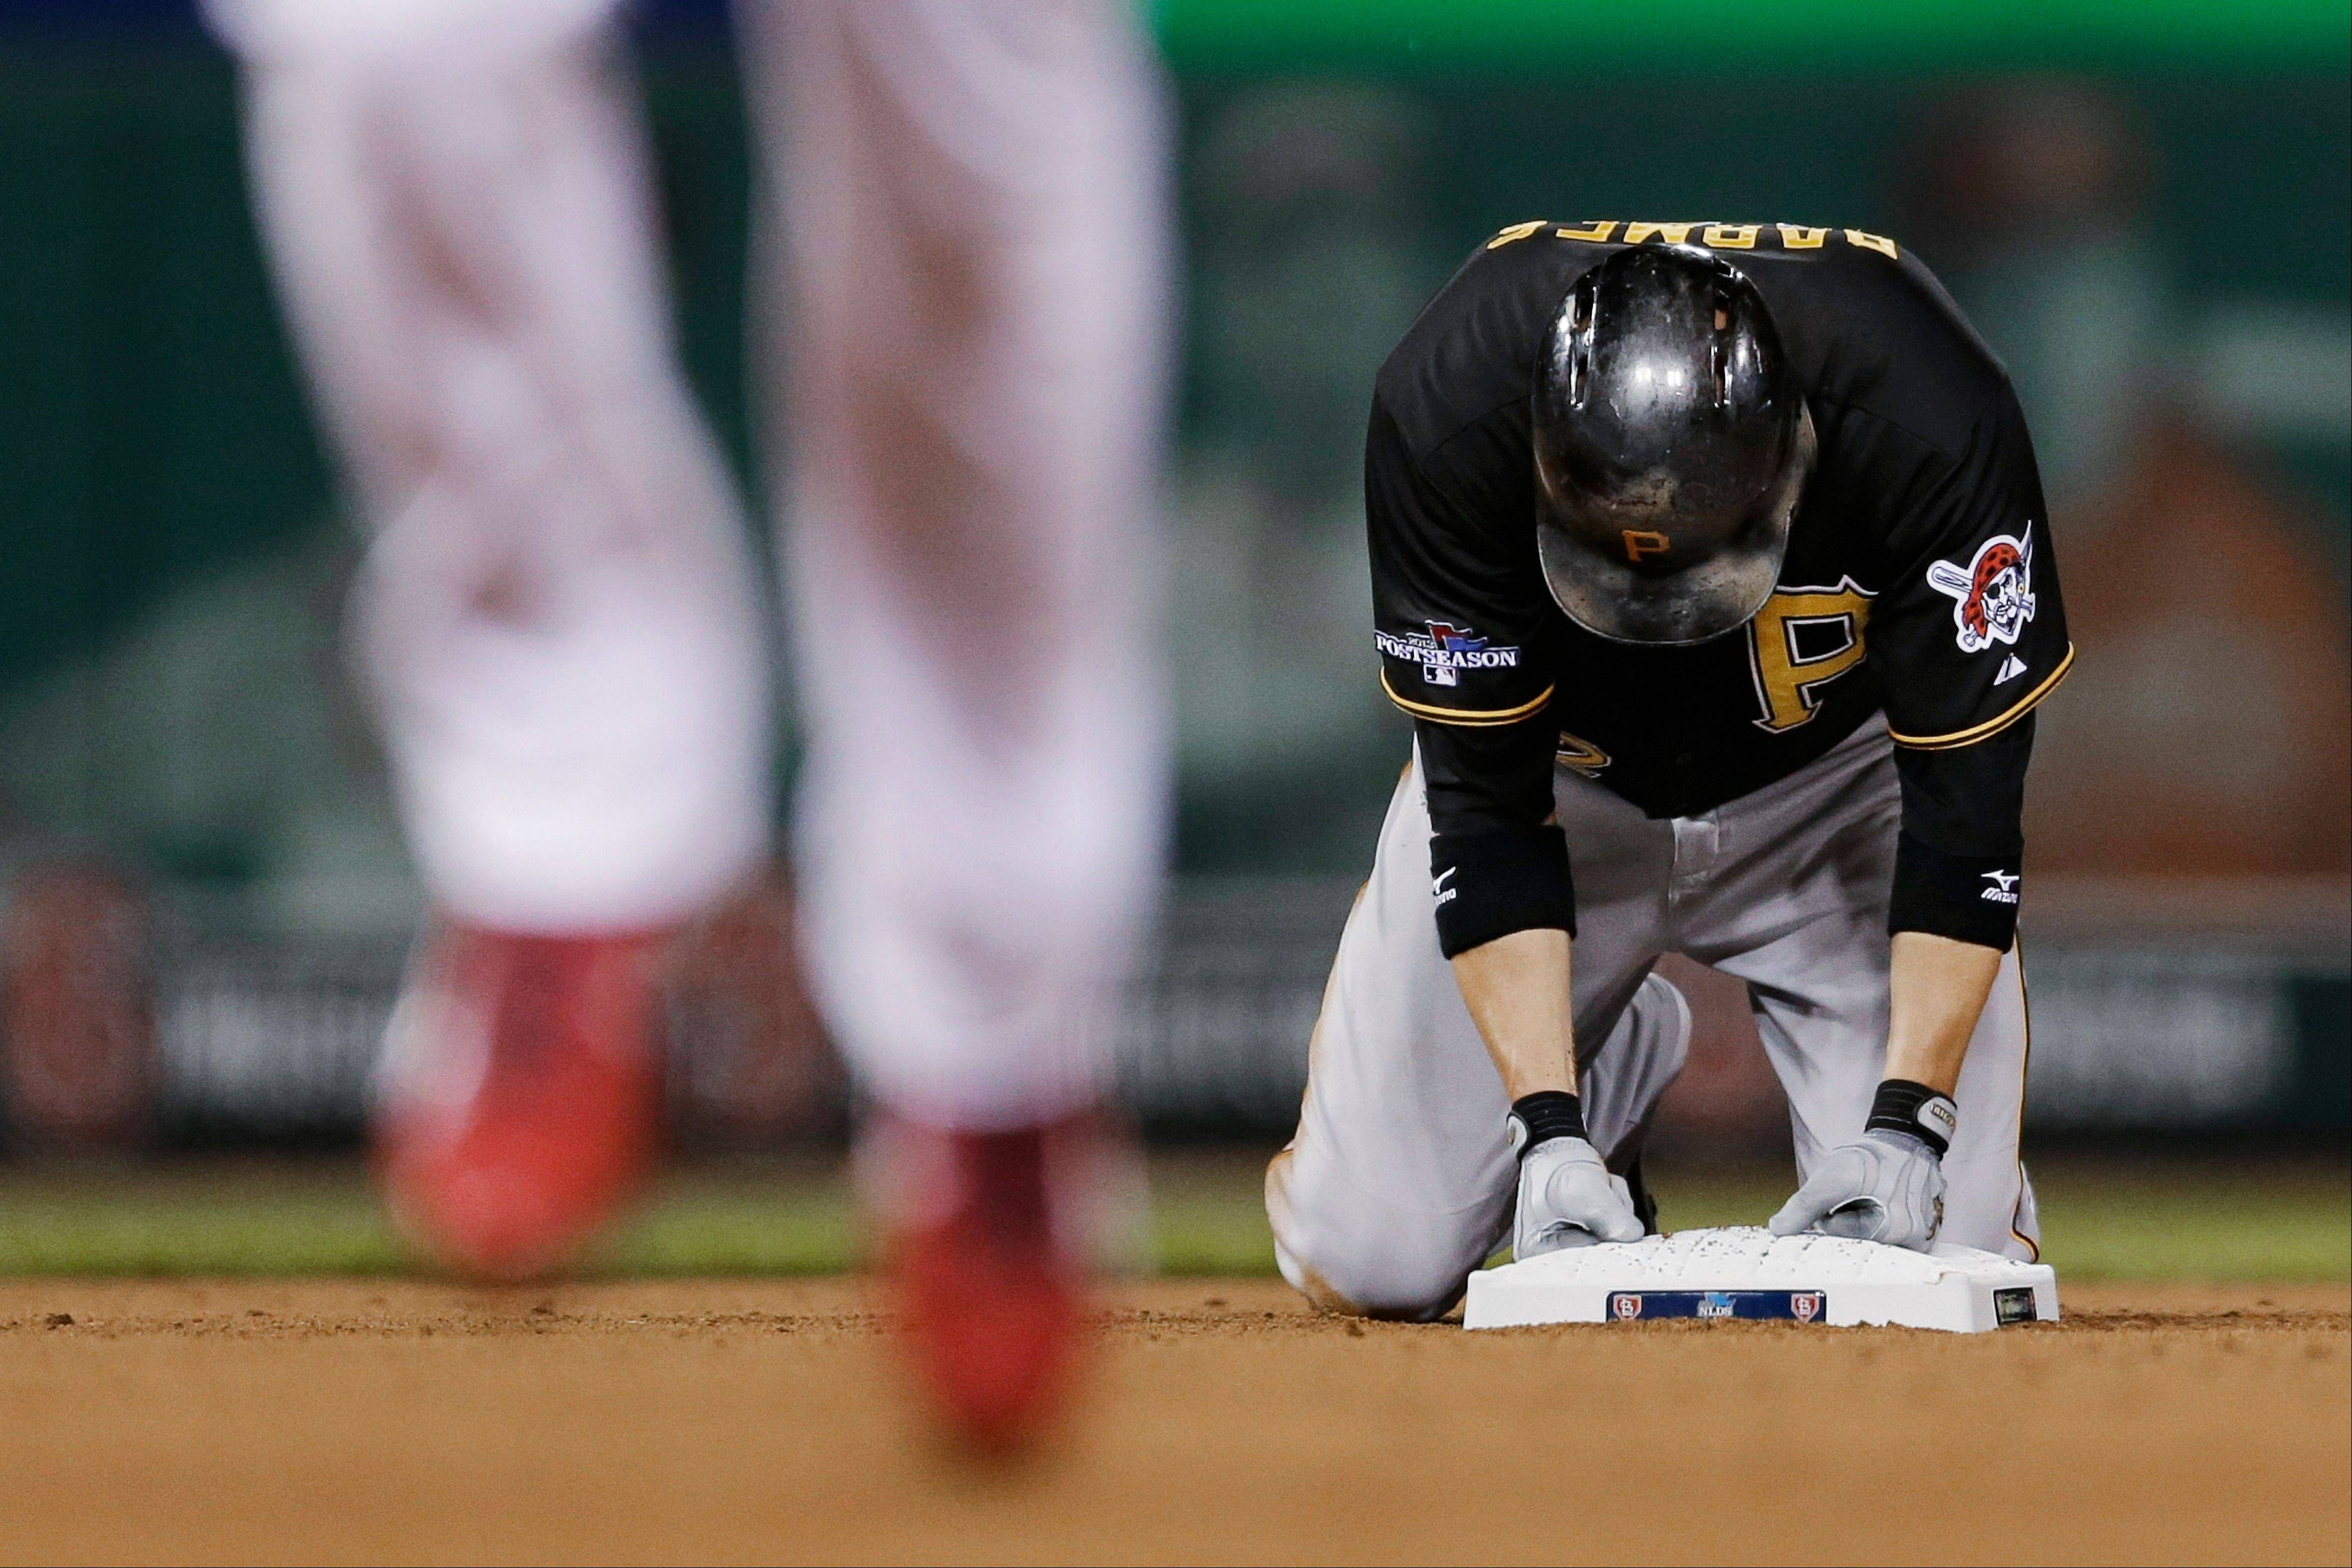 Pittsburgh's Clint Barmes kneels on second base after being forced out on a double play in the sixth inning.